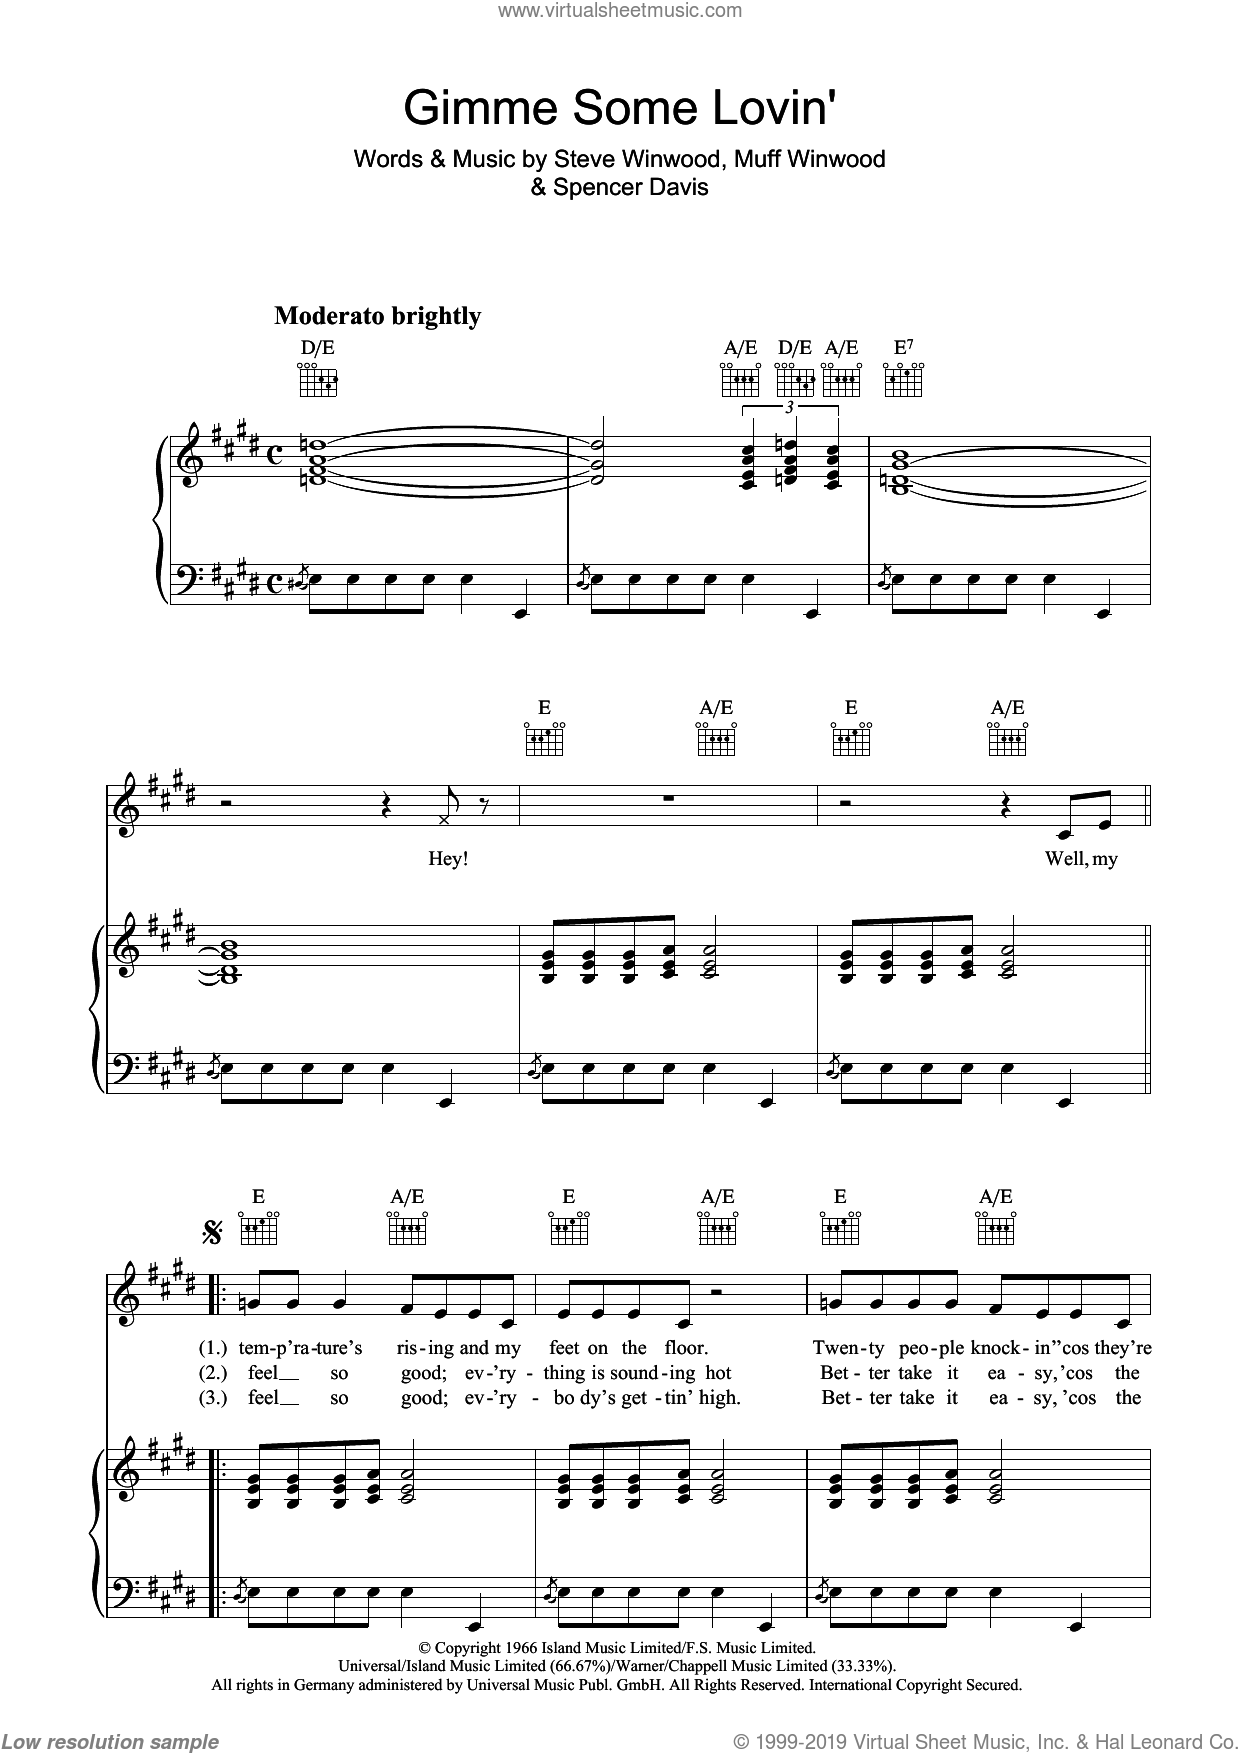 Gimme Some Lovin' sheet music for voice, piano or guitar by Spencer Davis